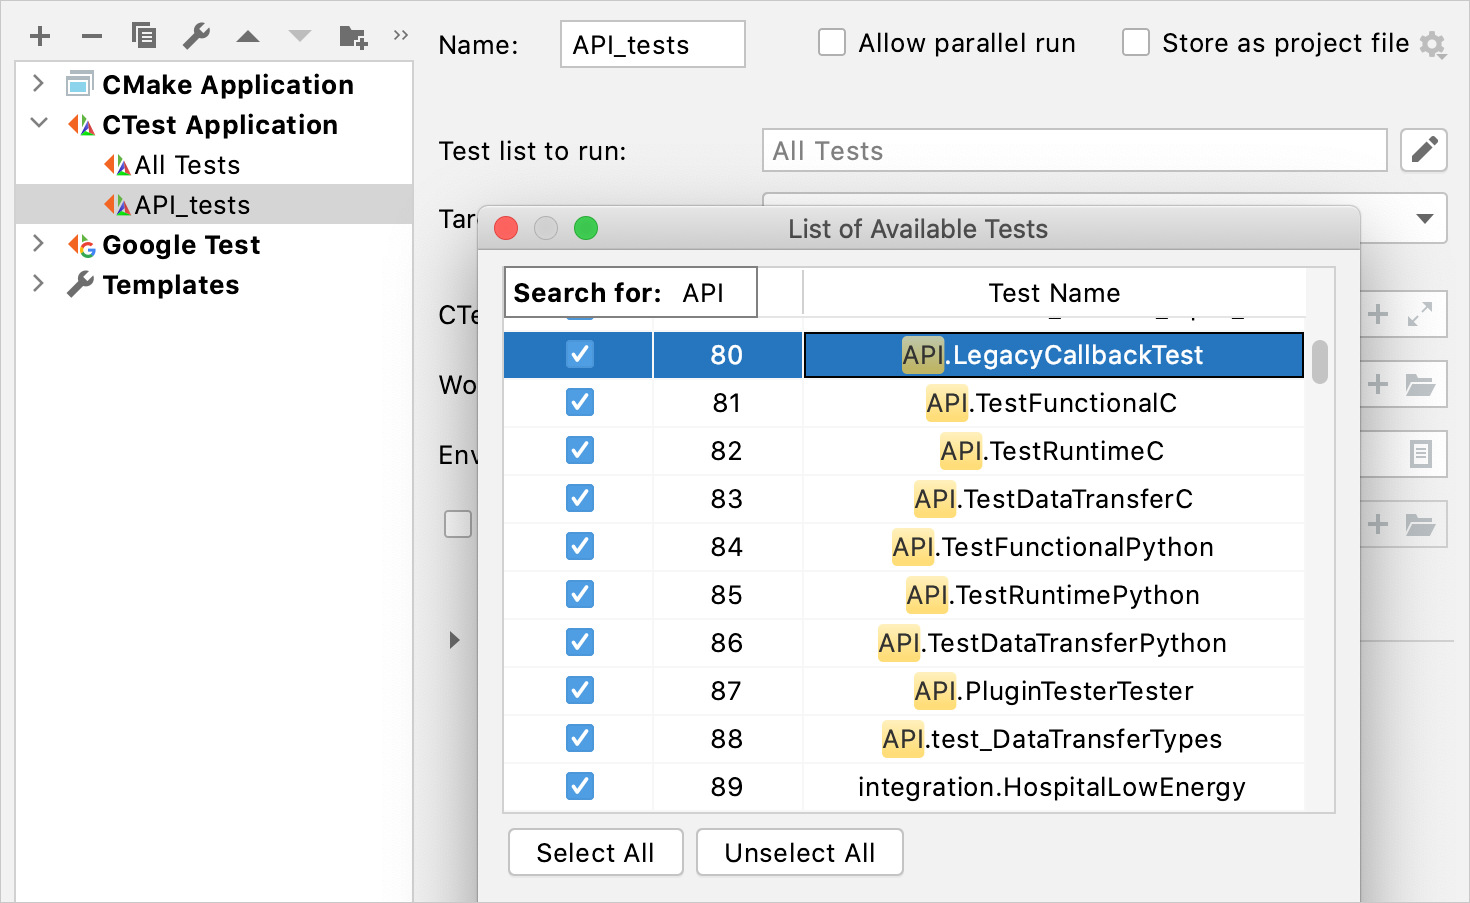 List of the available tests in CTest Application